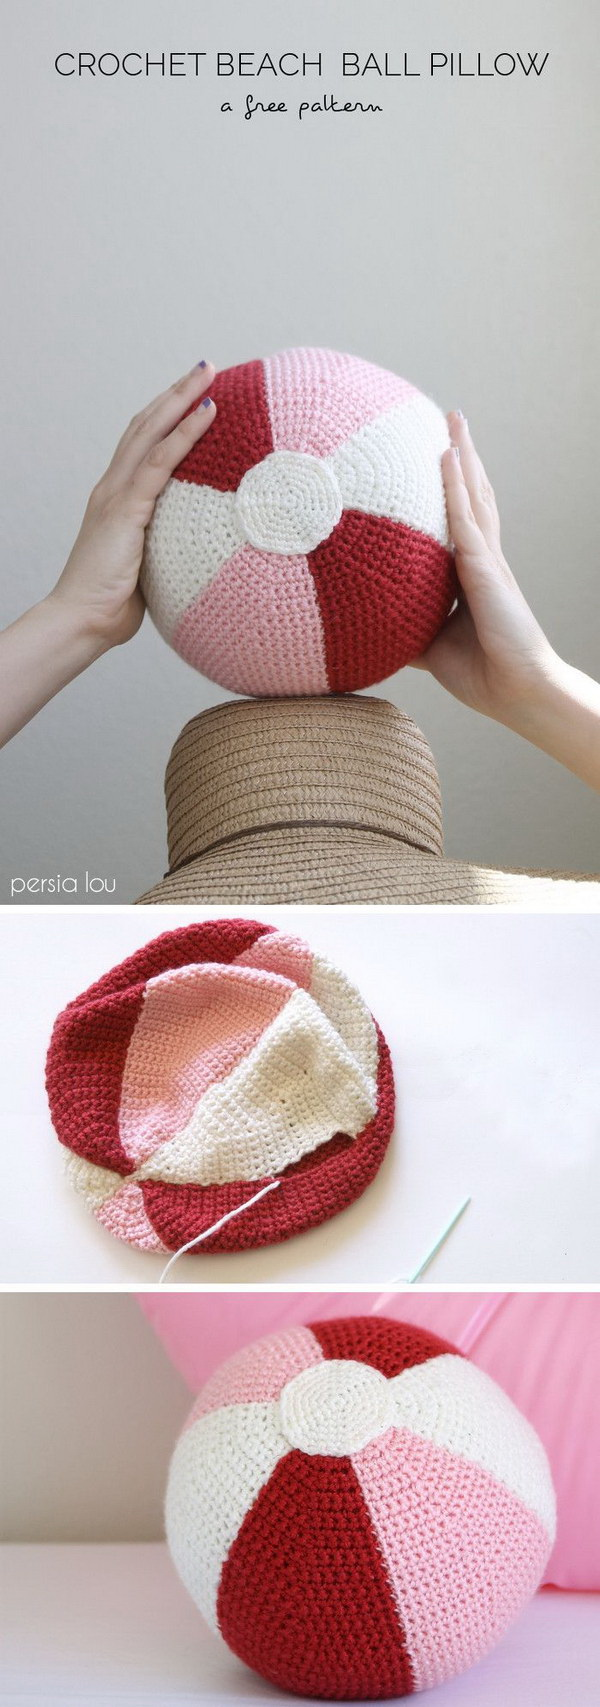 beginner crochet projects Learn the basic stitches and get started on all of our favorite knitting and crocheting projects project for beginner crochet, which is an all.